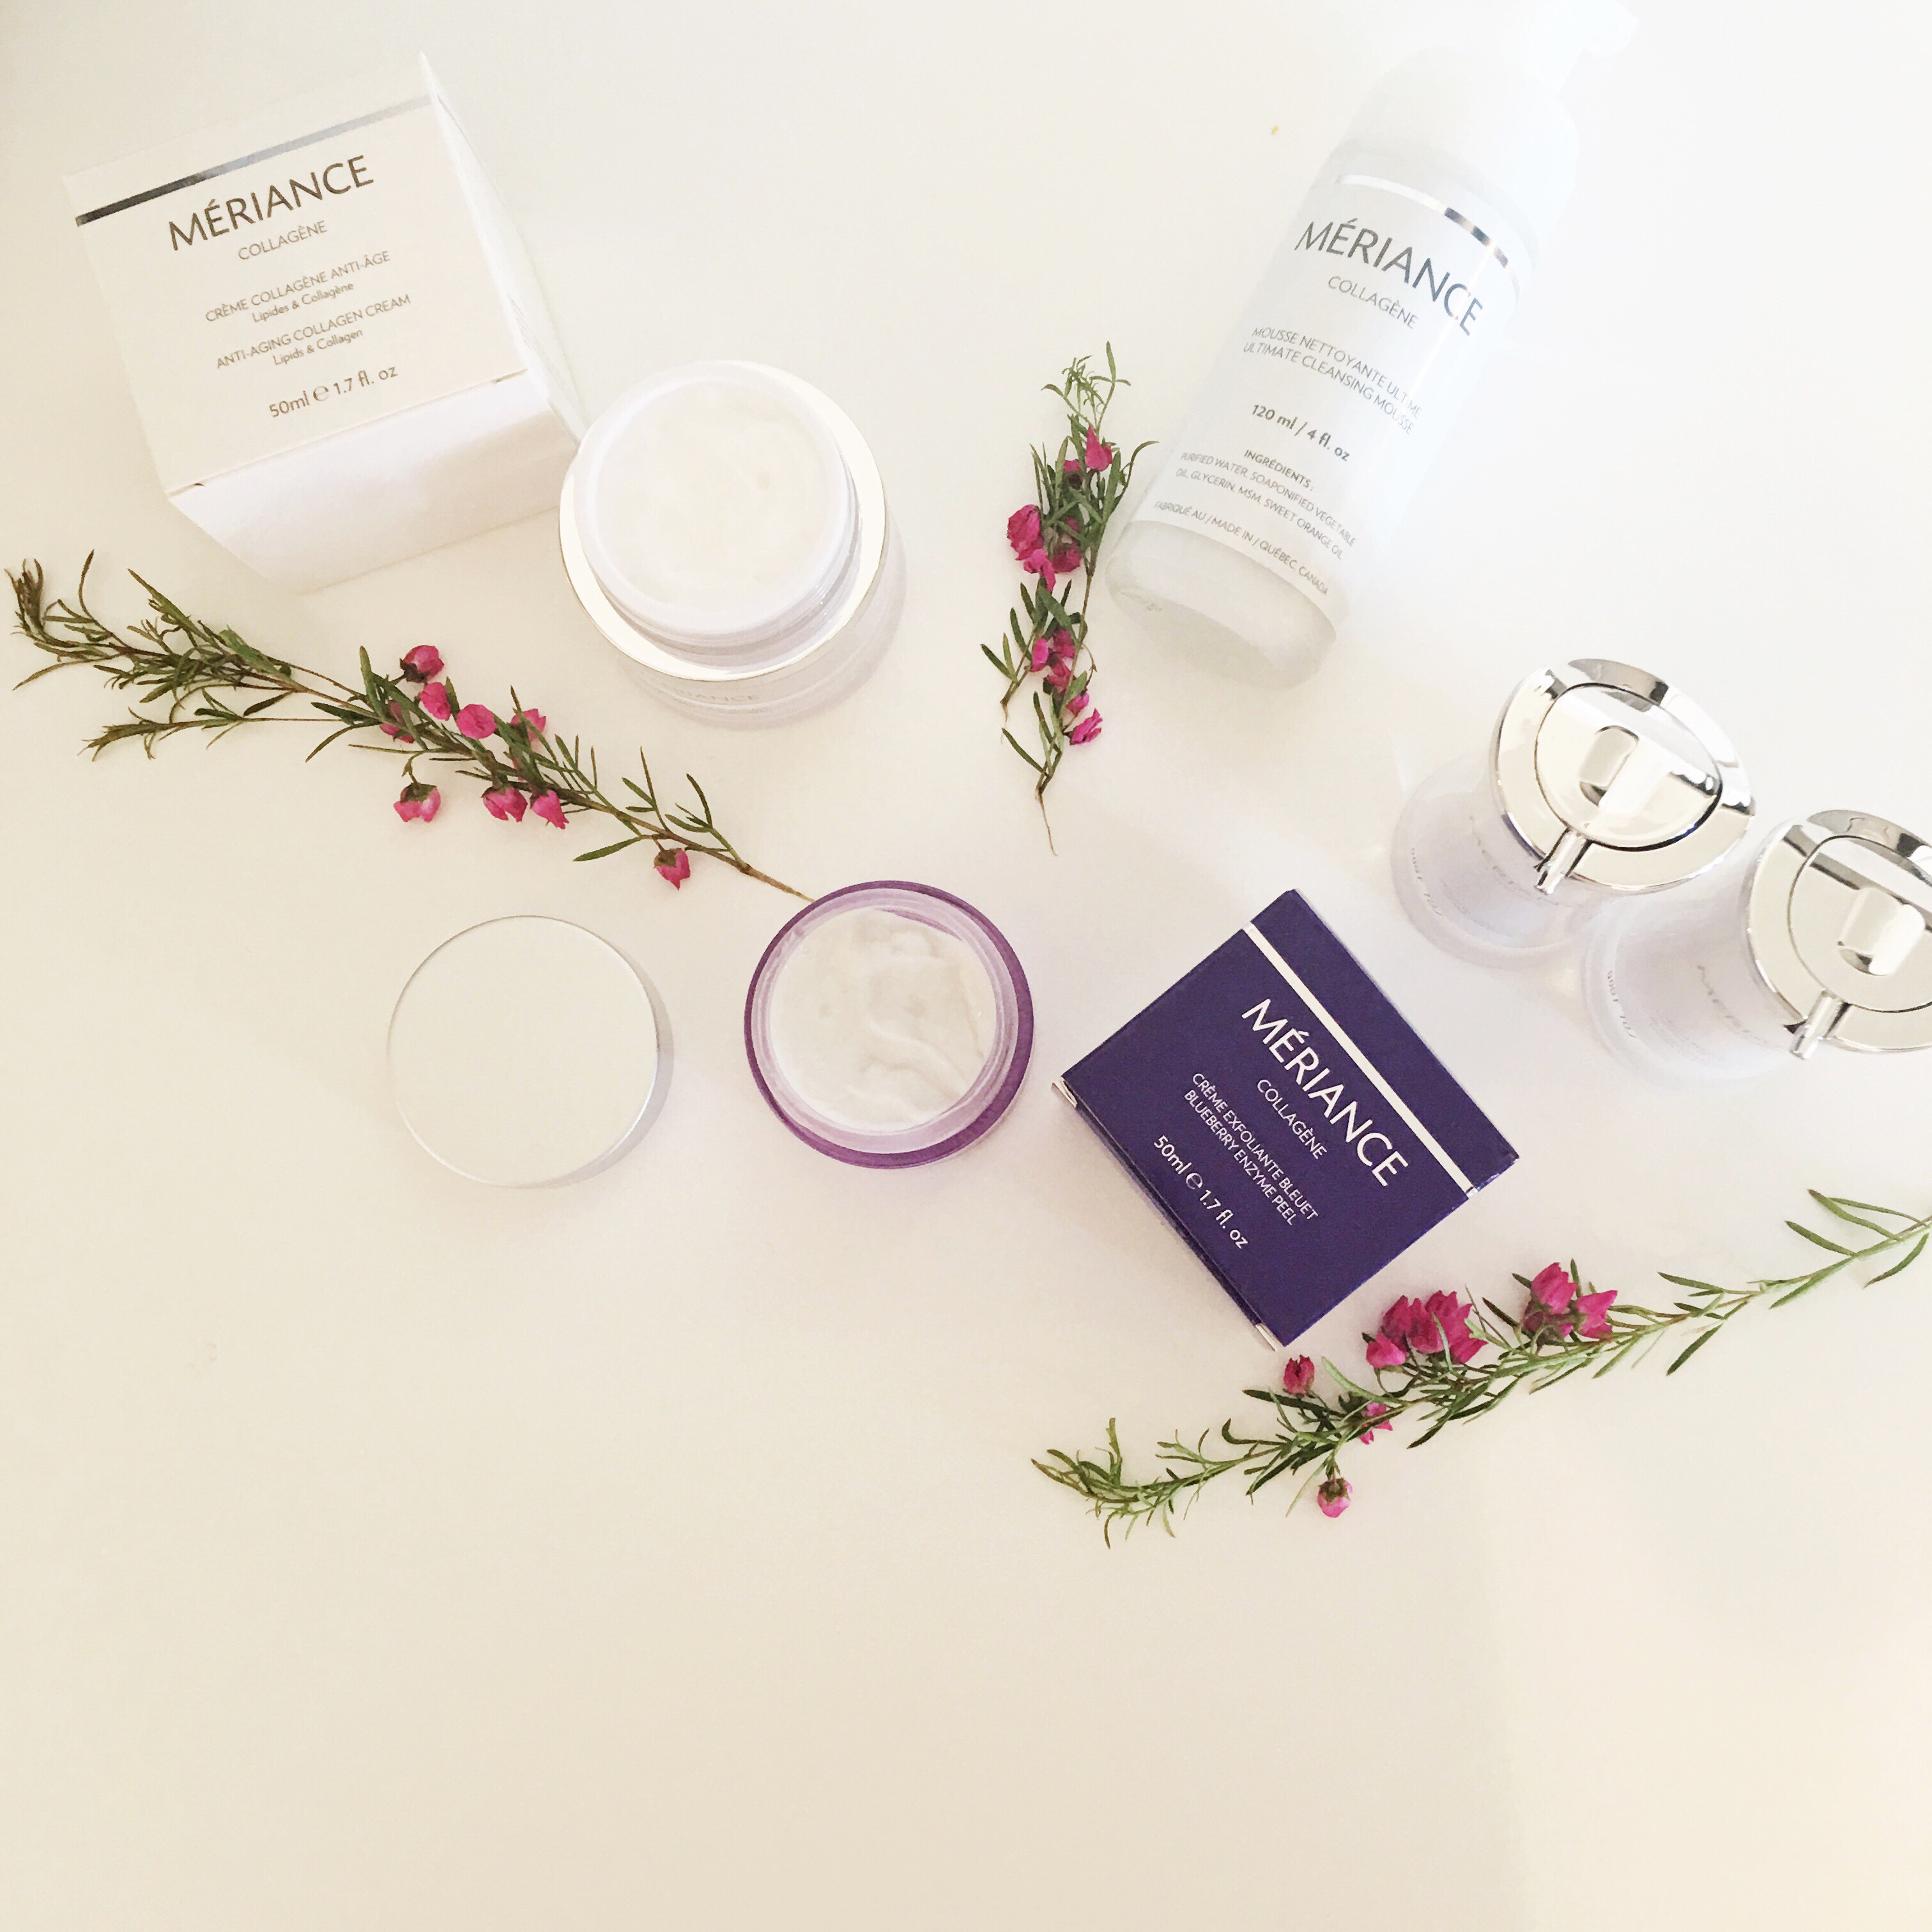 skincare with meriance…